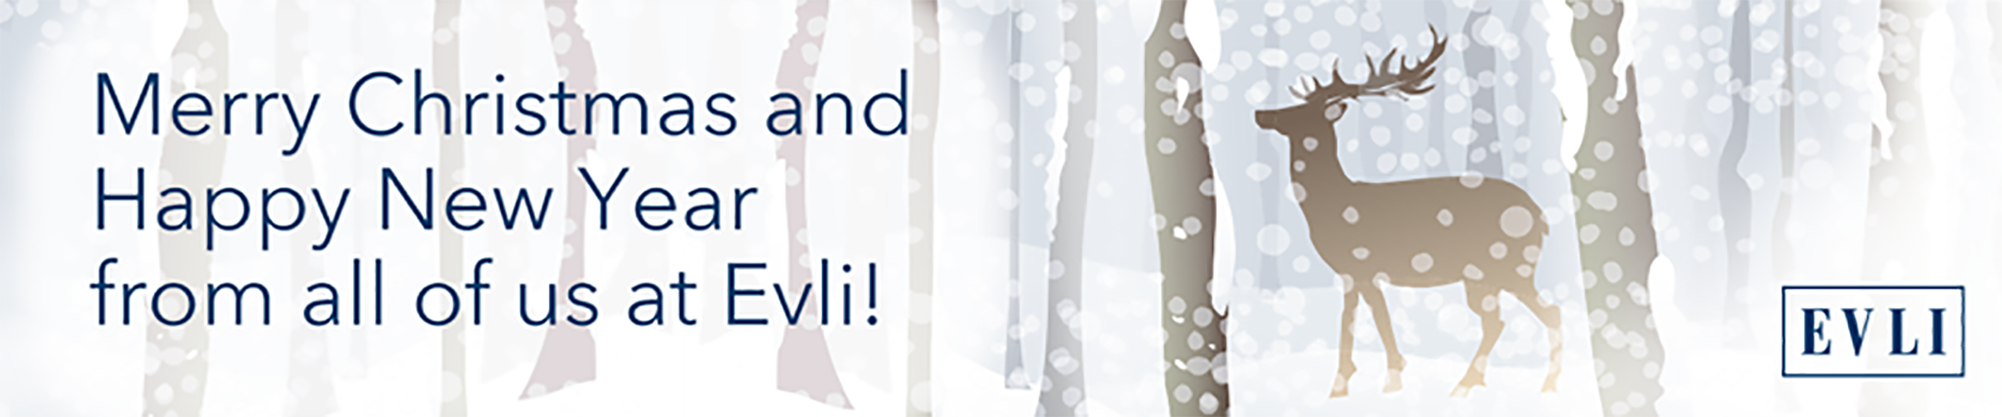 Evli Christmas Banner with a drawn deer in a snowy forest